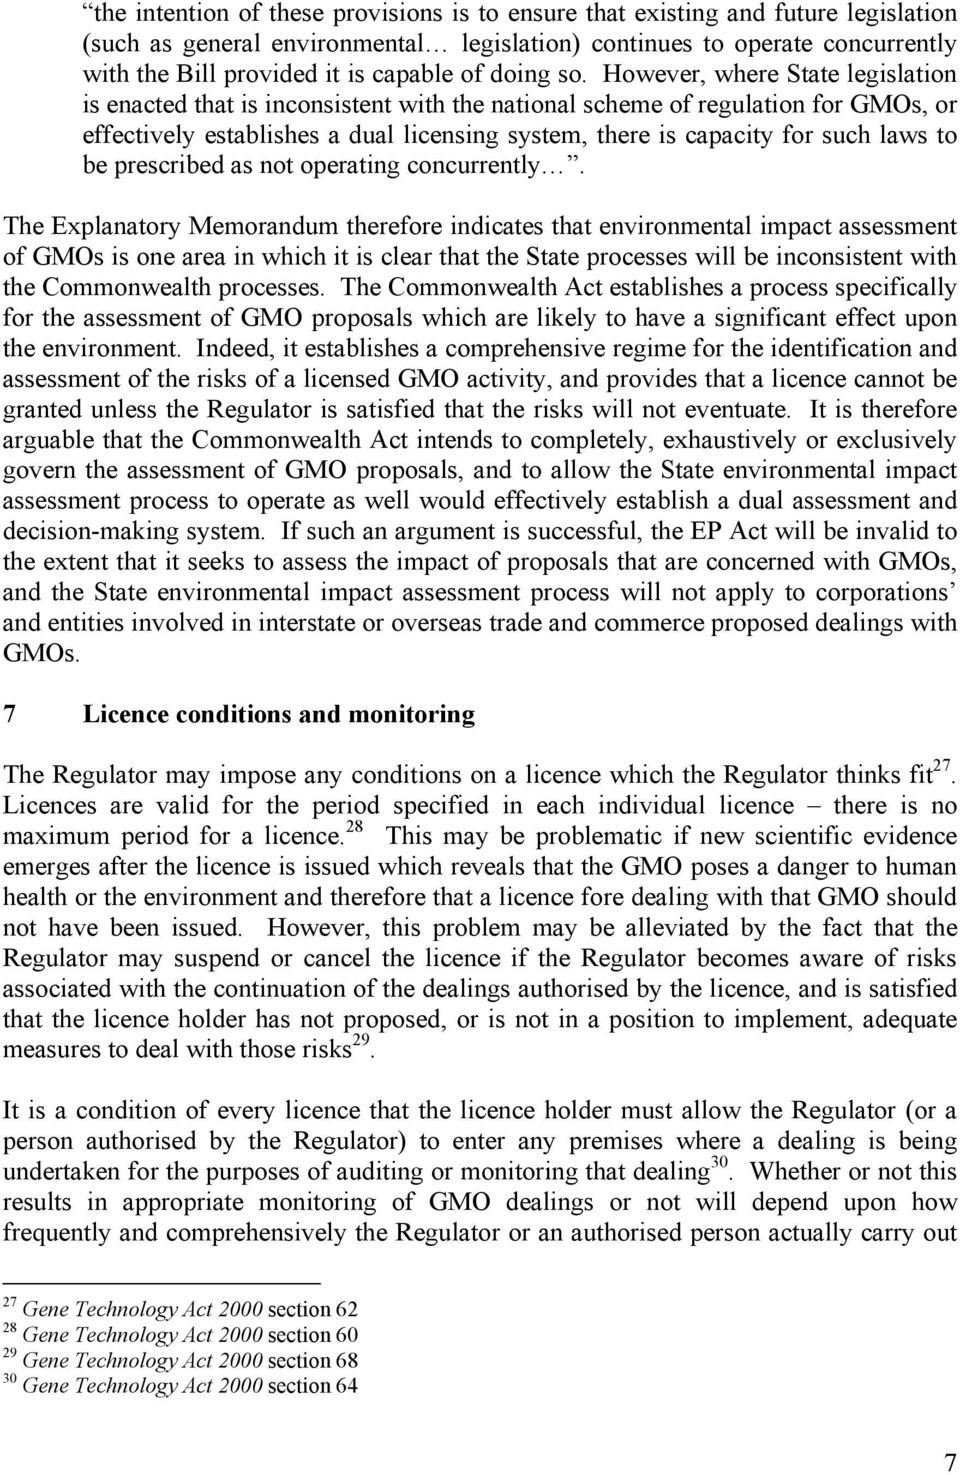 However, where State legislation is enacted that is inconsistent with the national scheme of regulation for GMOs, or effectively establishes a dual licensing system, there is capacity for such laws